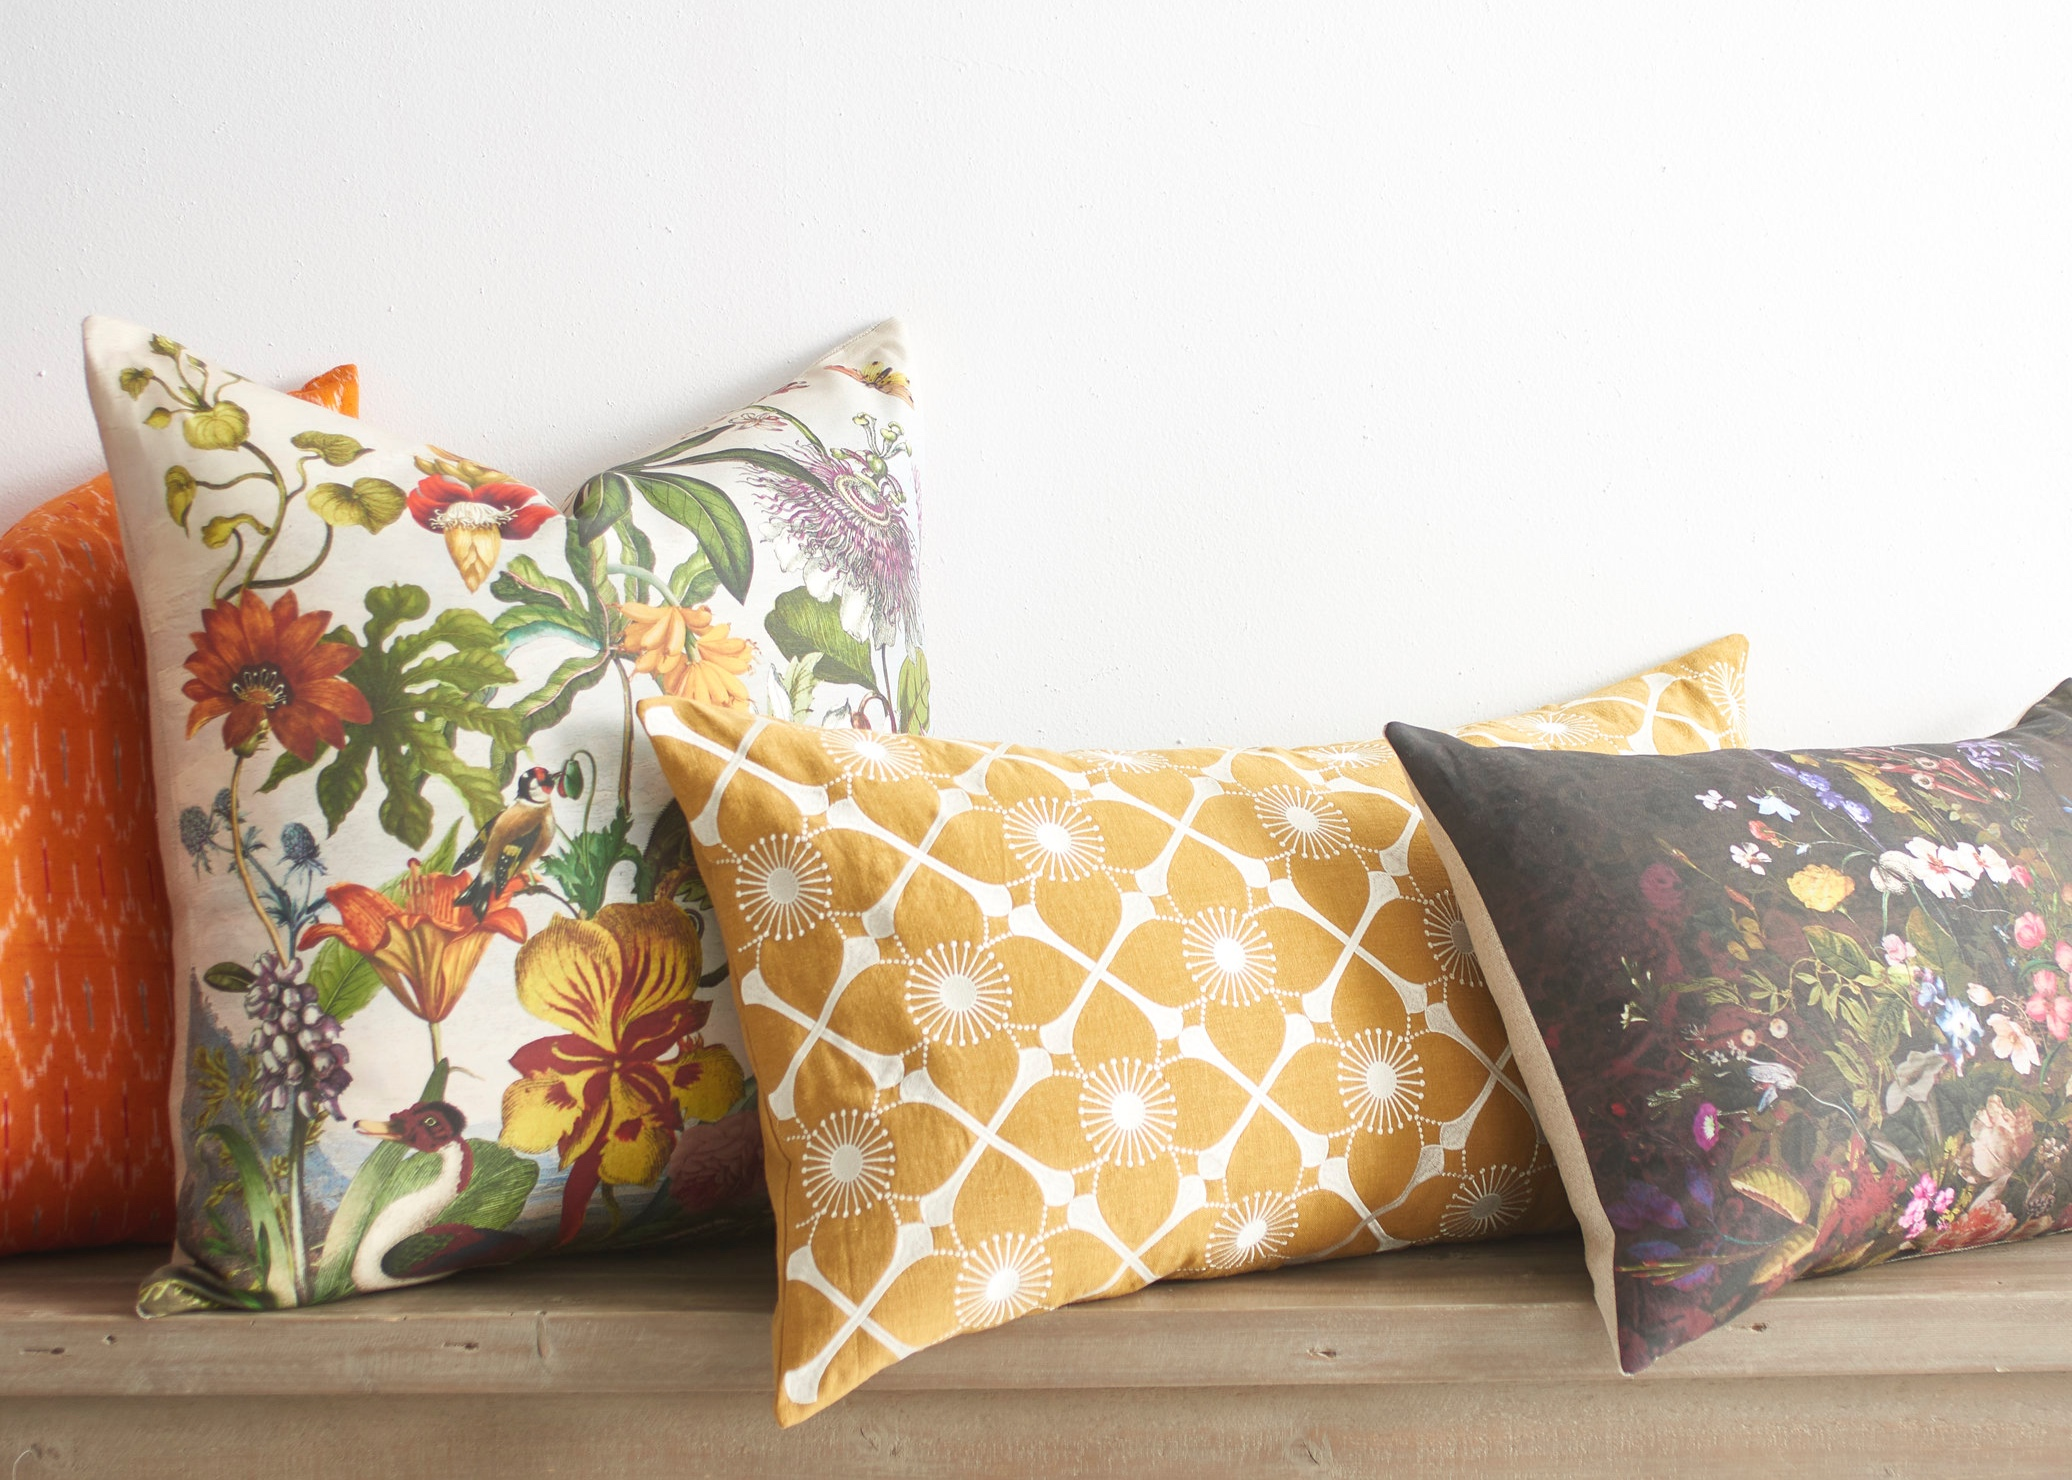 New Toss Pillows —(from left to right) Orange Ikat, Bold Botanical, Daffodil Bolster, and Secret Garden Bolster all come together for a great collection of pattern, texture, and color.